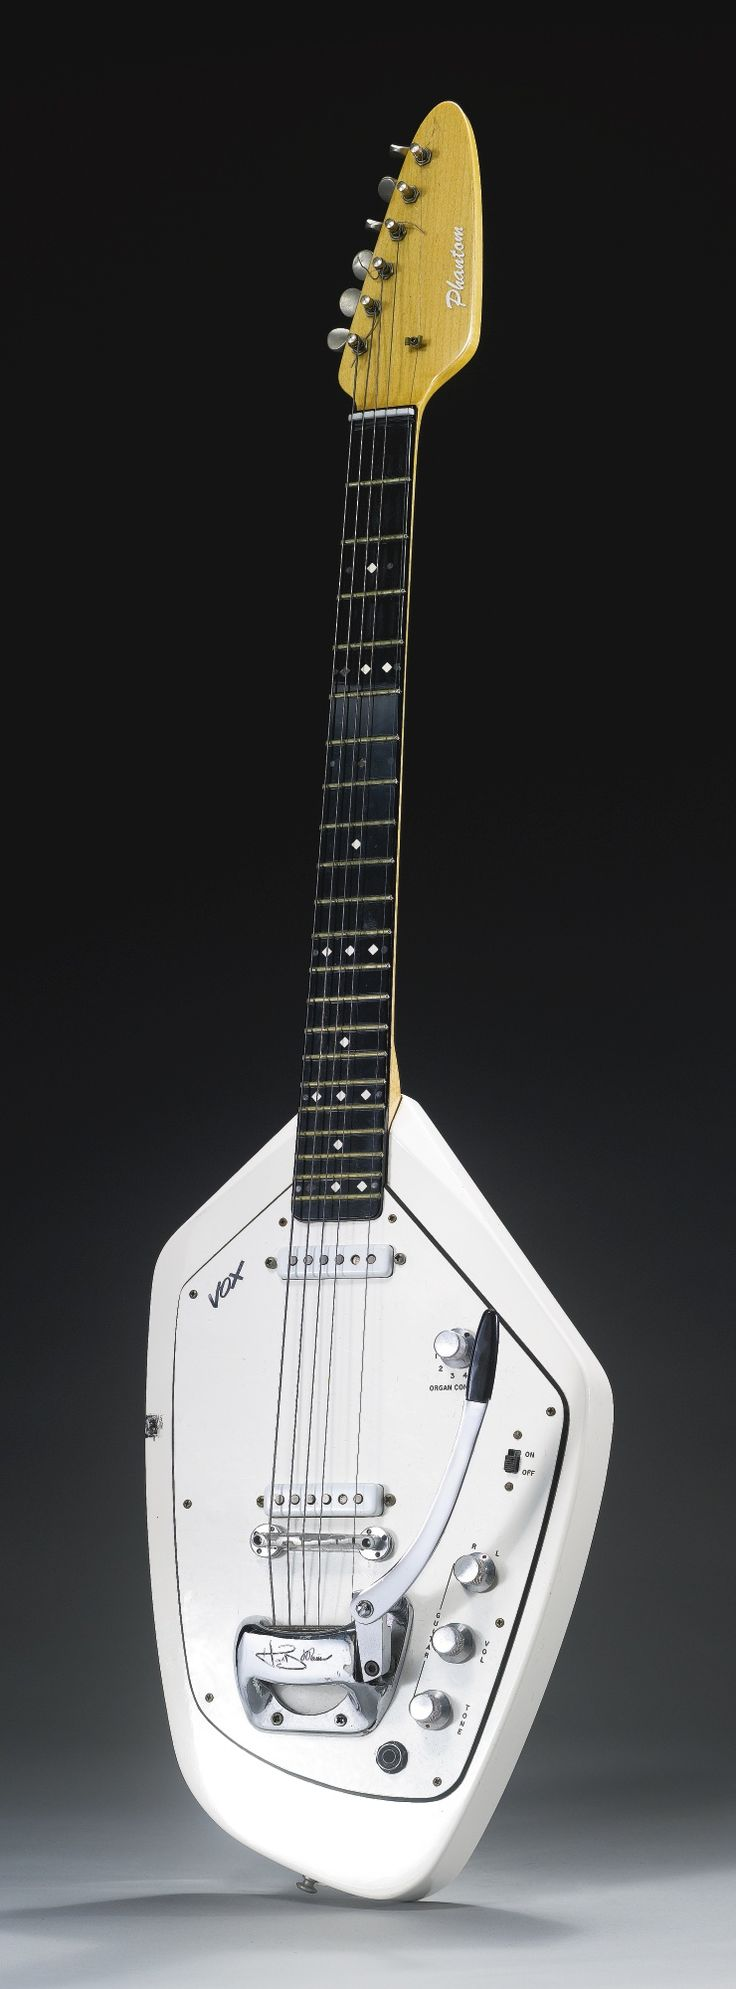 """GIVEN BY THE INVENTOR TO JOHN LENNON 